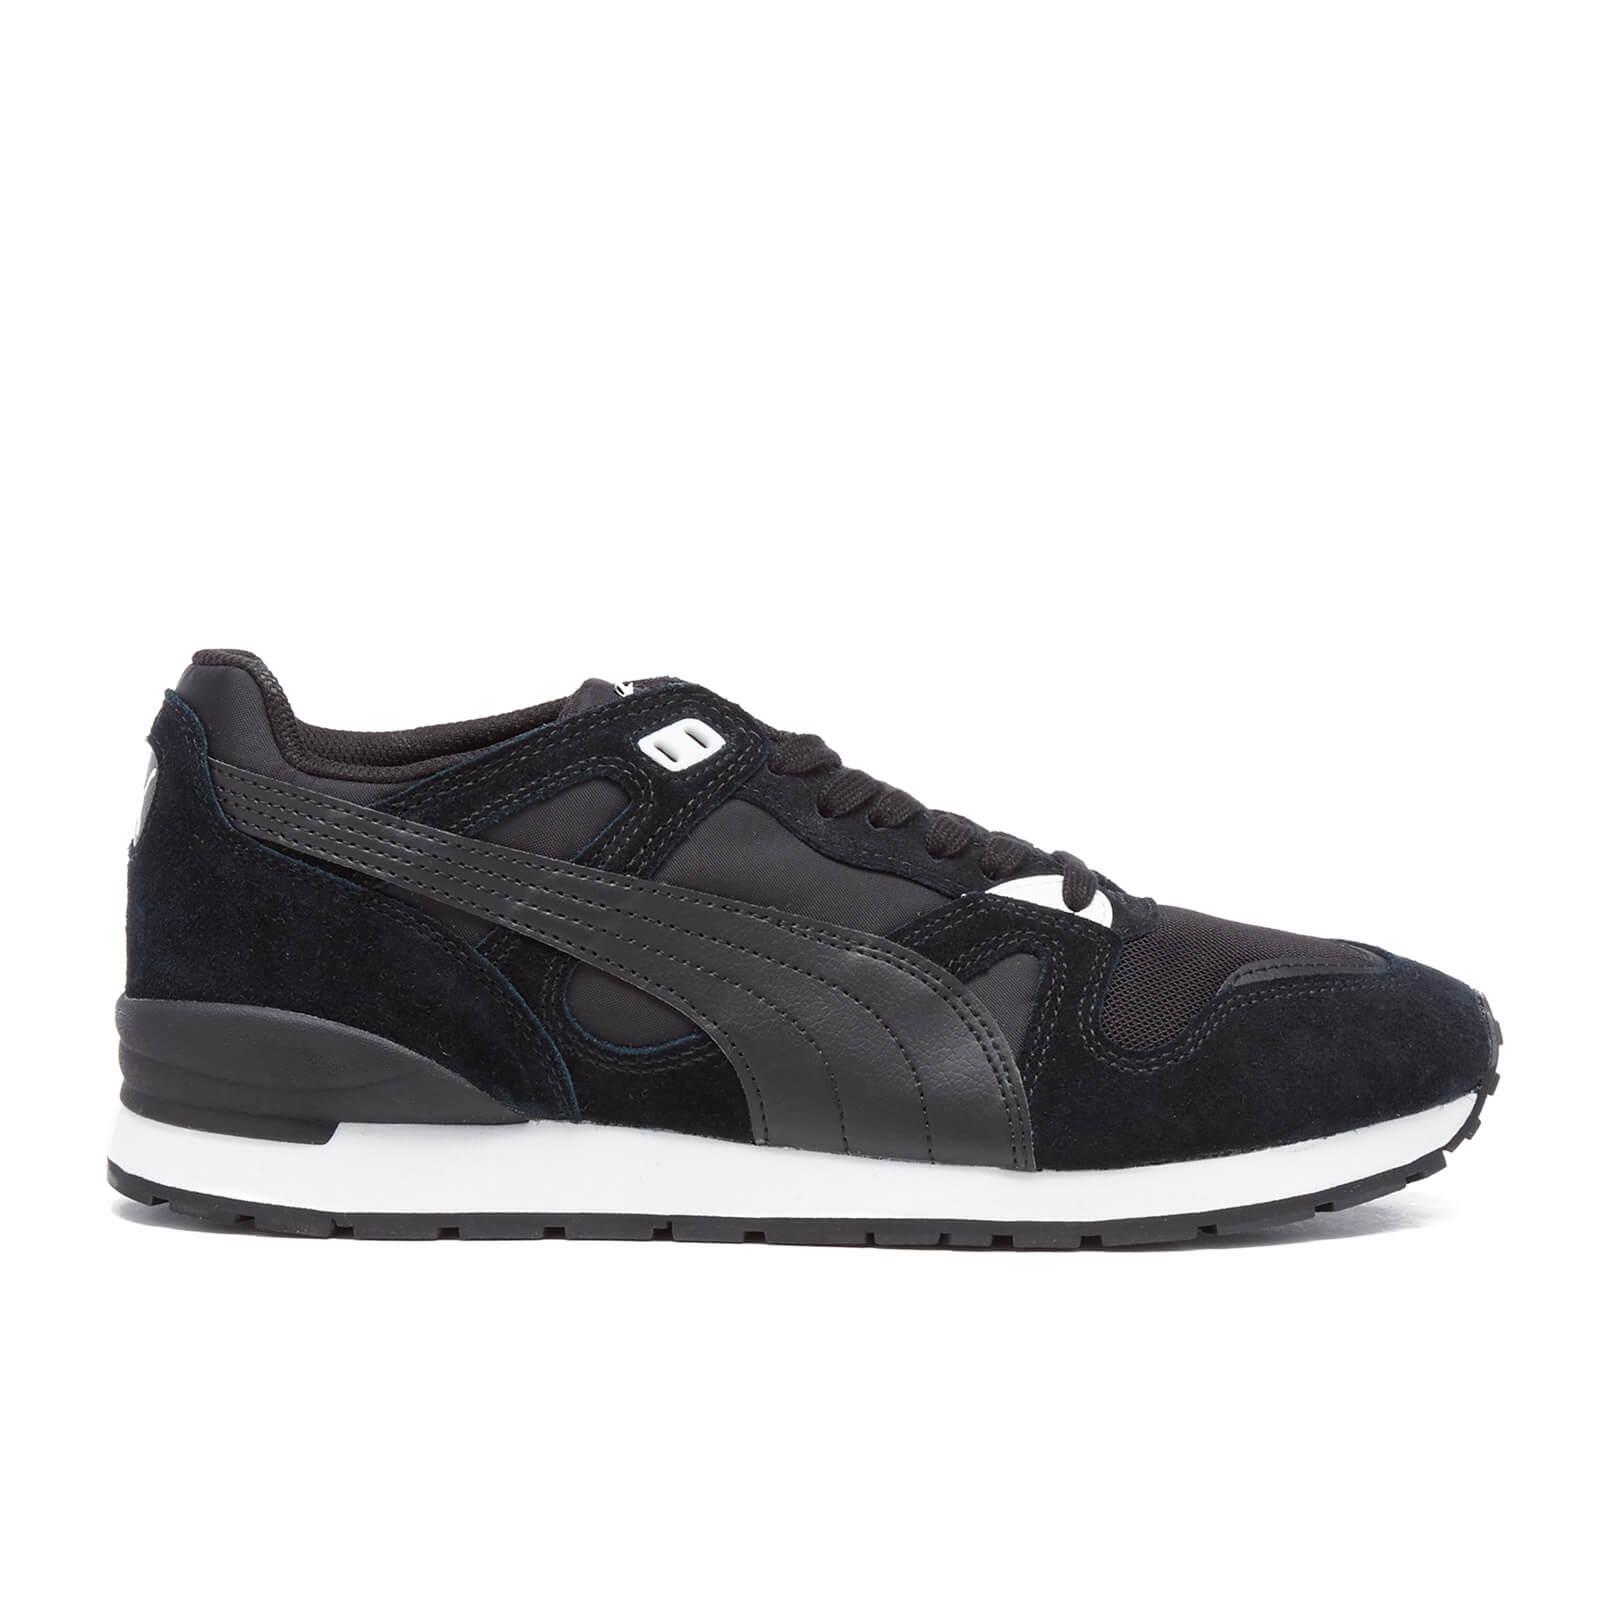 c6962b95420e Puma Men s Duplex Classic Trainers - Puma Black - Free UK Delivery over £50